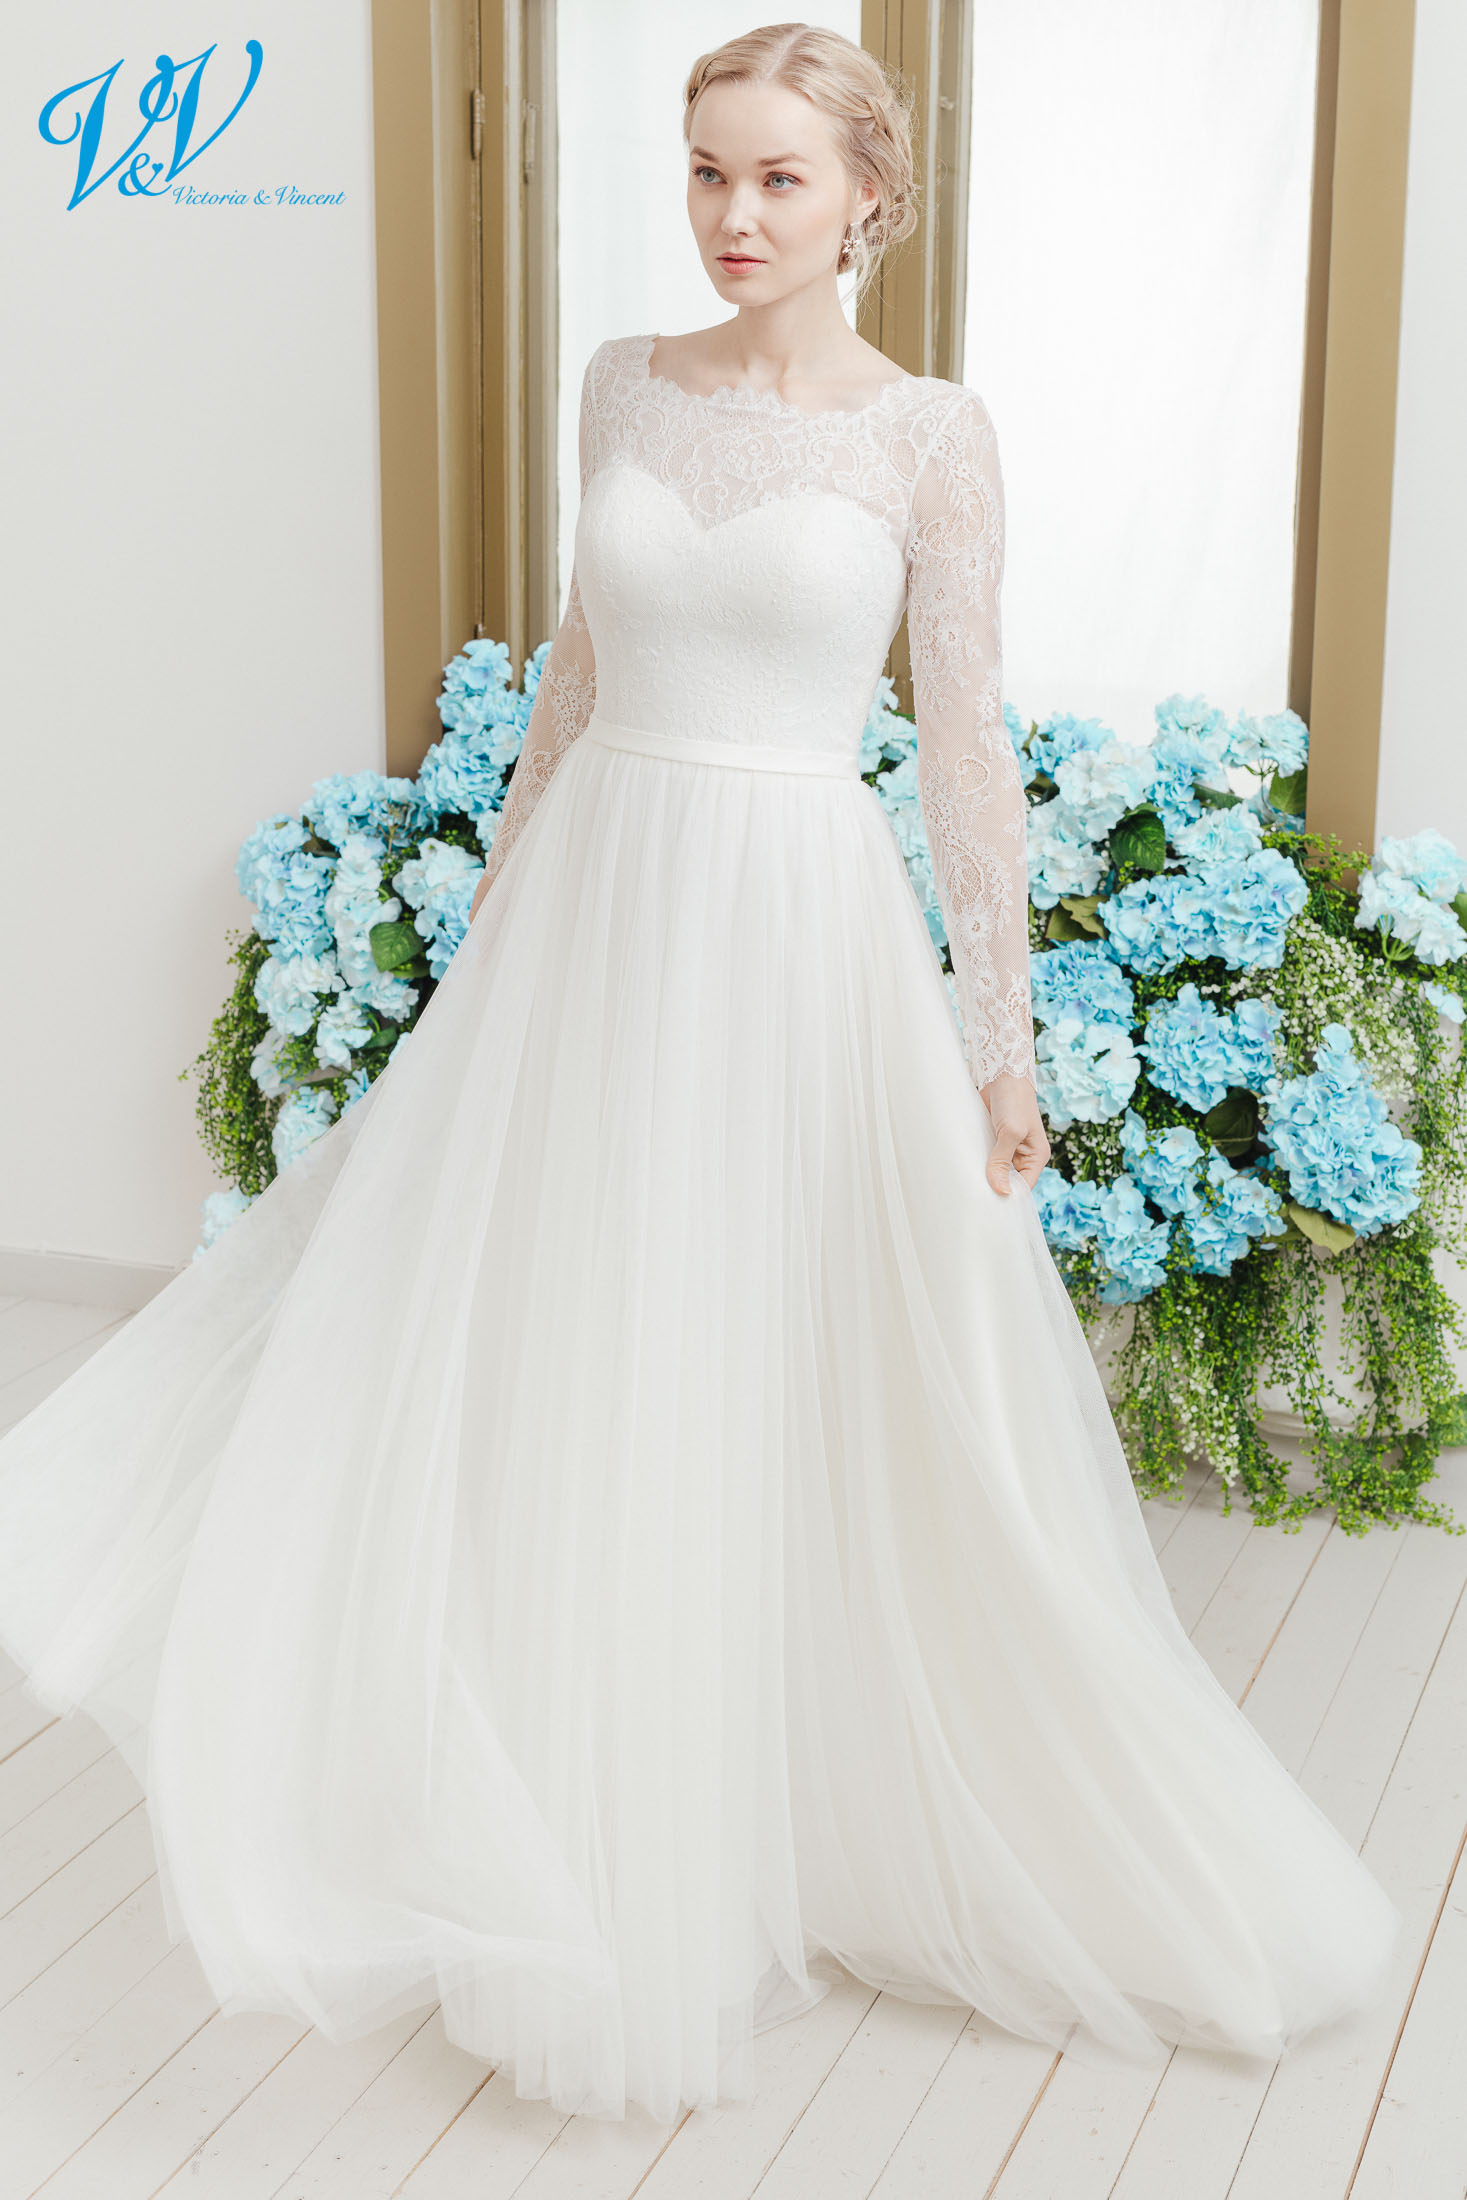 Traditional wedding dress with long sleeves, a high neckline and a soft tulle skirt. This classy bridal gown is perfect for a church wedding. Color in the picture is ivory but this bridal gown is also available in white.